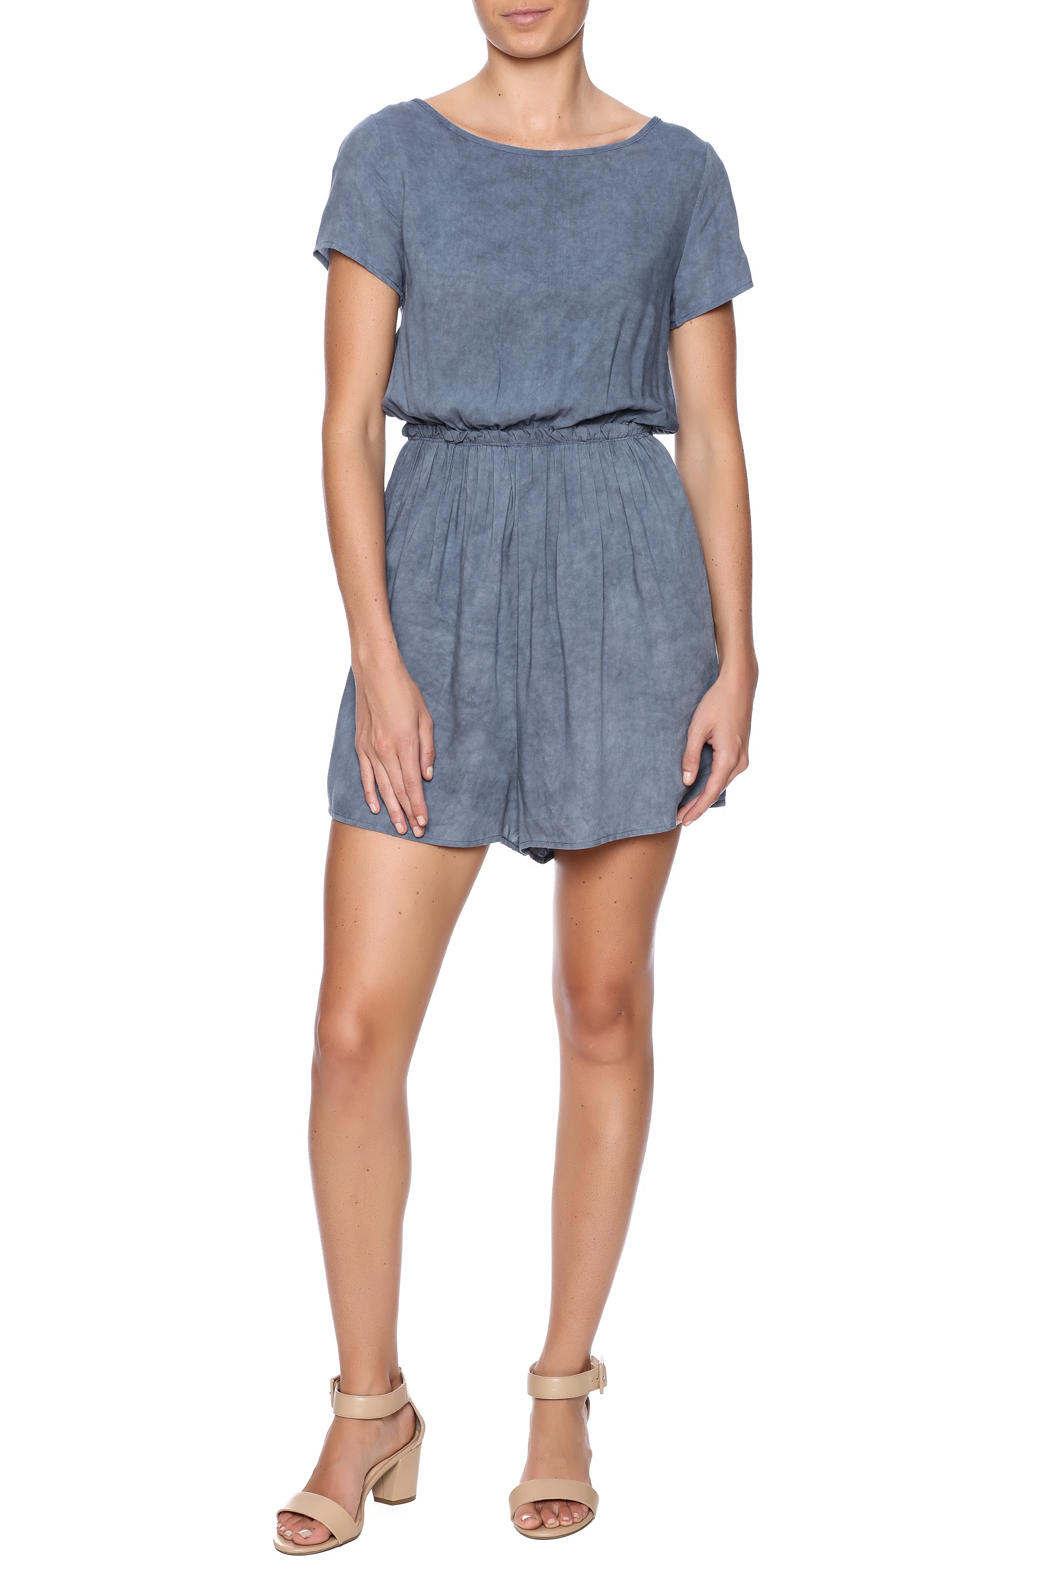 Jella Couture Washed Denim Romper - Front Full Image